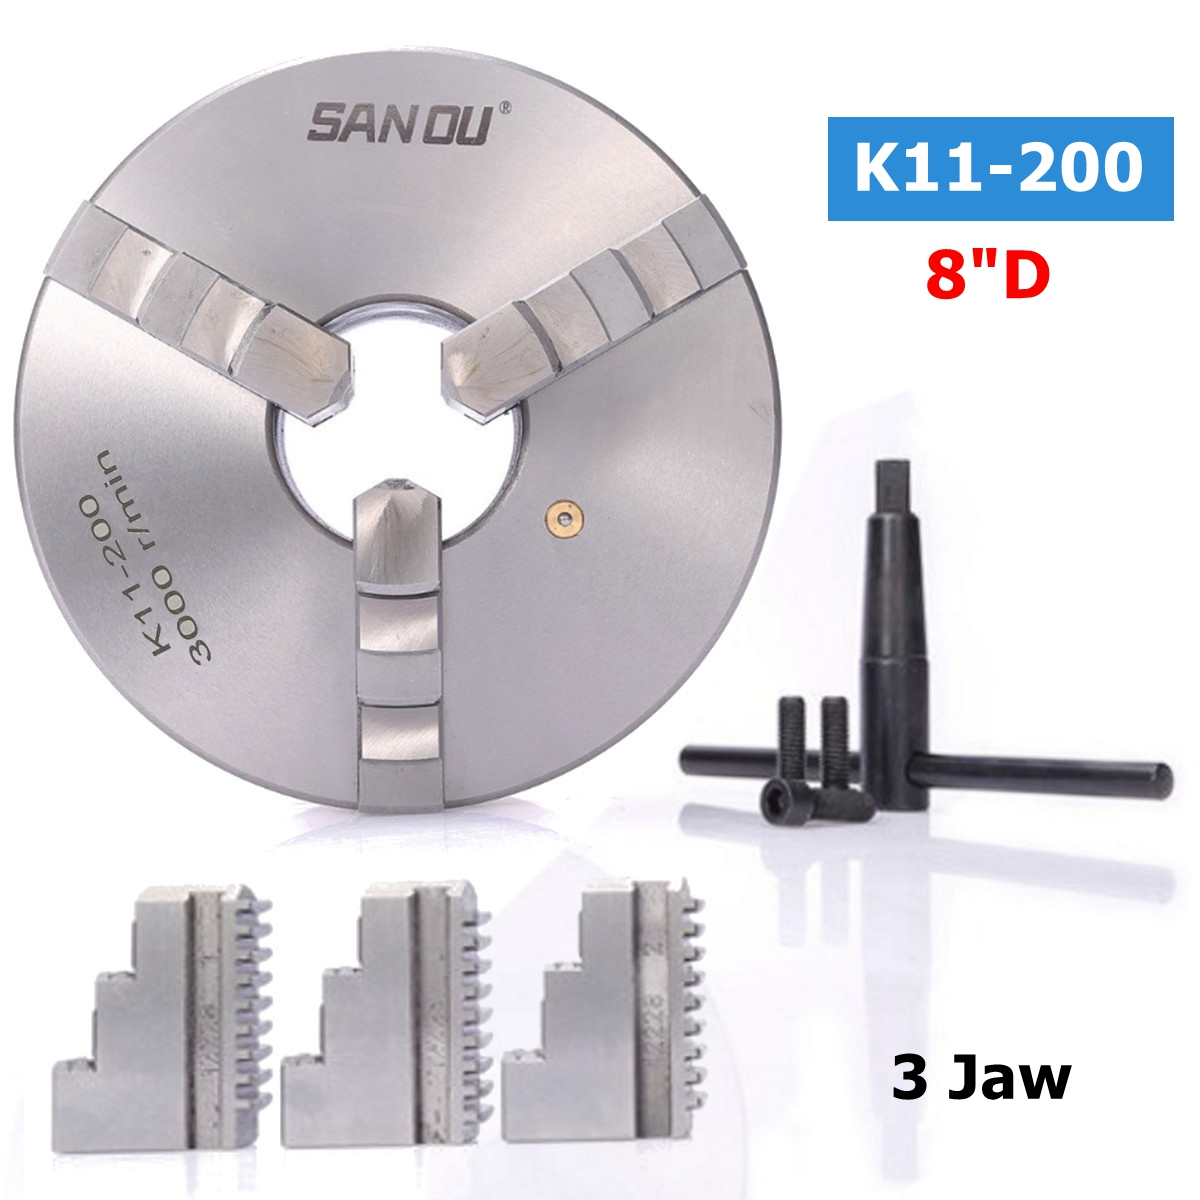 SANOU K11-200 3 Jaw Self Centering Lathe Chuck Hardened Steel 8 Inch Jaw Chuck for Drilling Milling Machine cnc milling machine part rotational a axis 80mm 3 jaw chuck